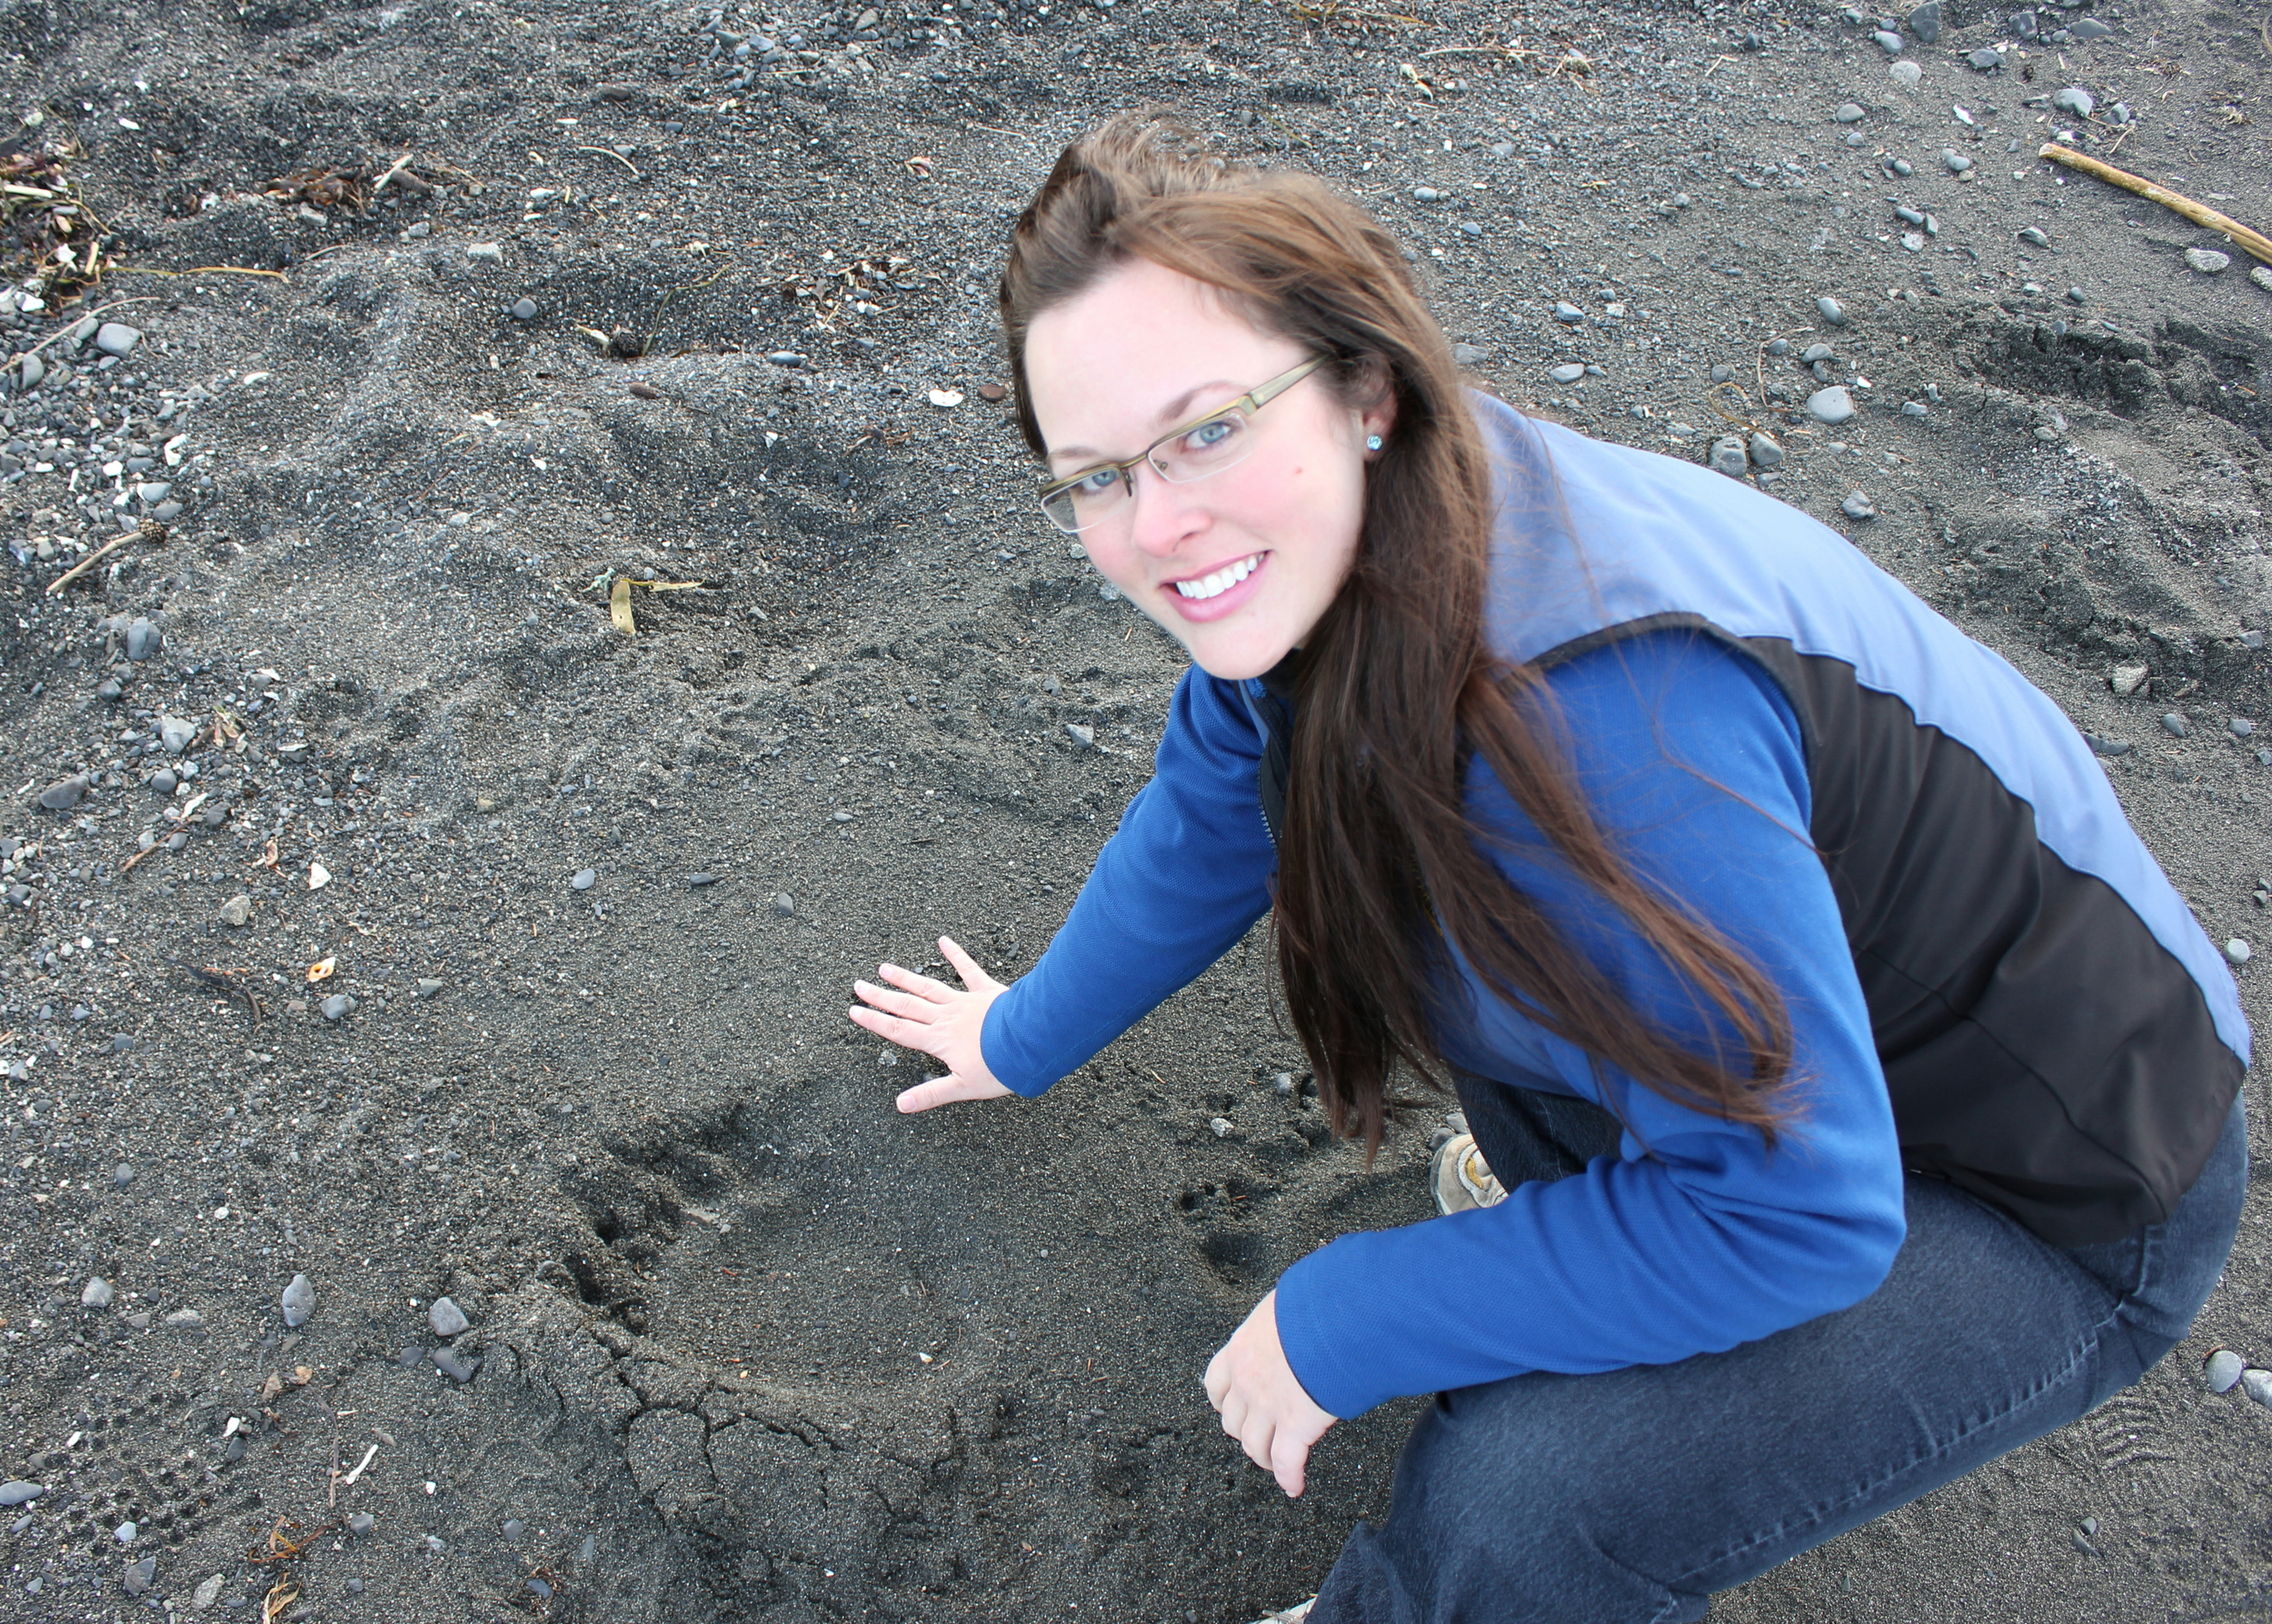 Saw huge bear tracks up and down the beach near the rotting whale, but the majestic Kodiak Brown Bear was elusive.